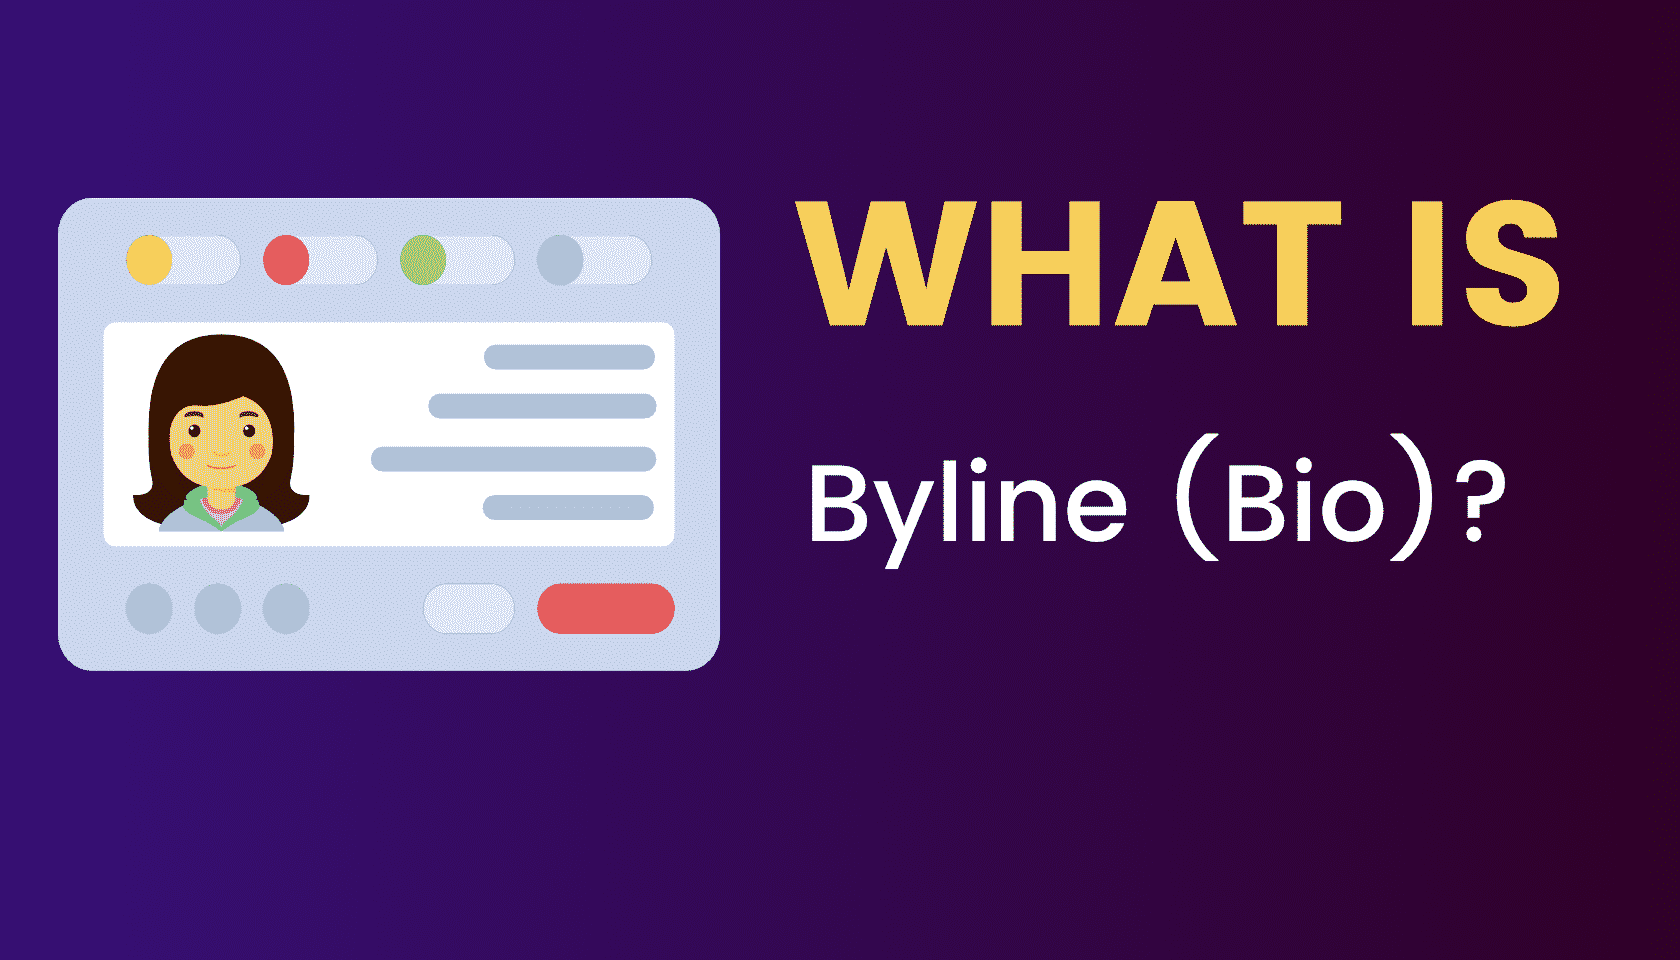 What is: Byline (Bio)?